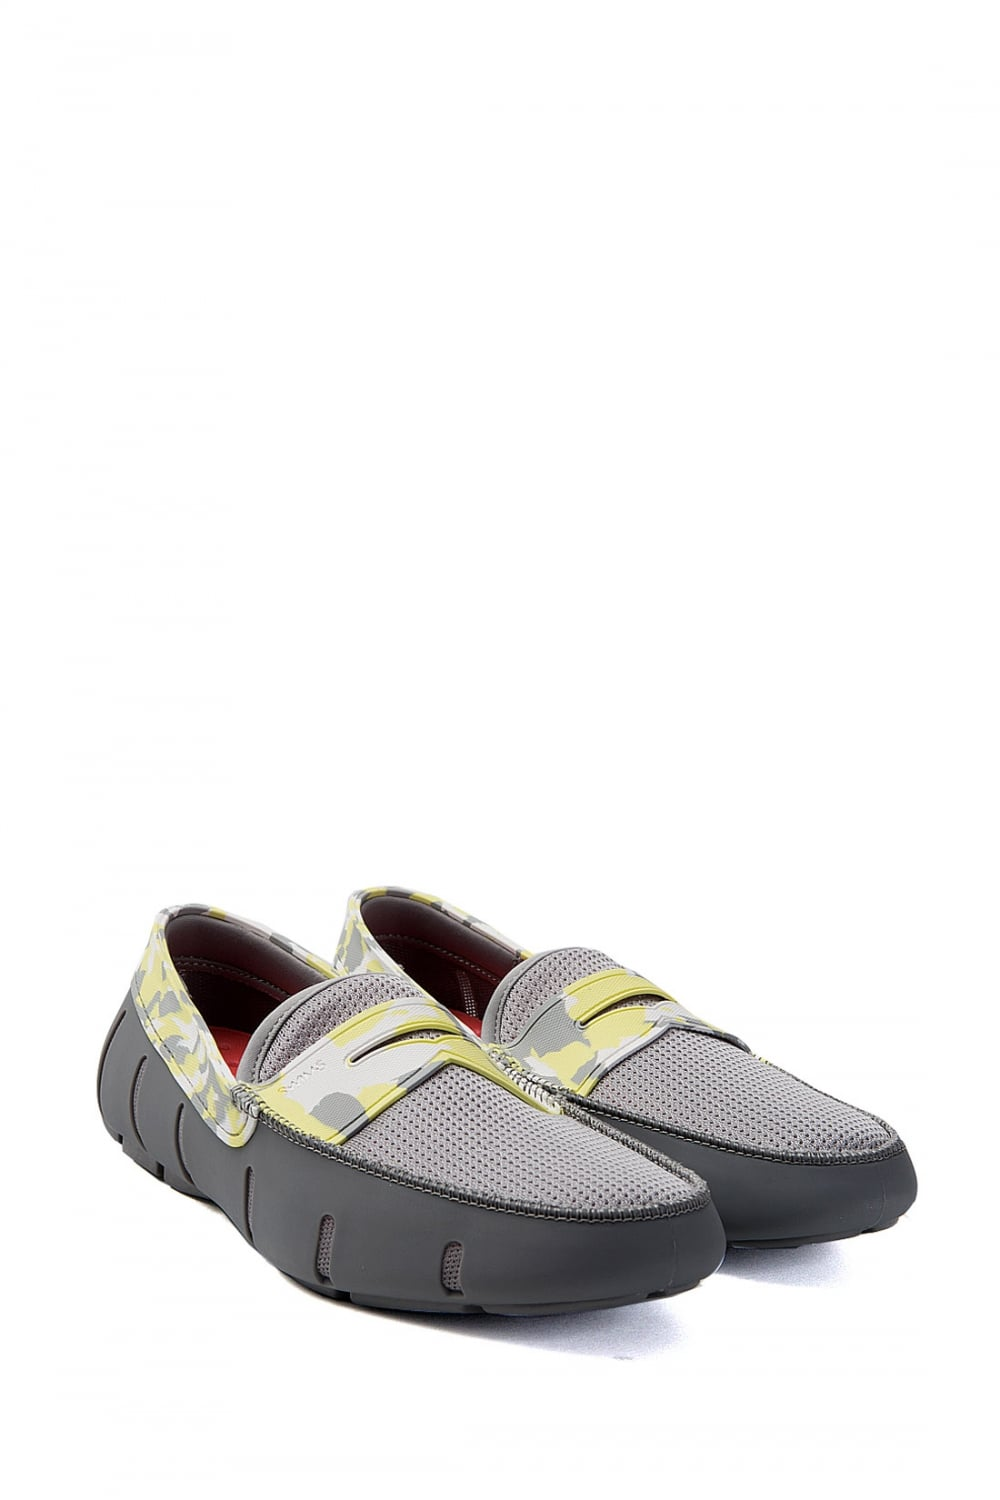 167191edf66 SWIMS Swims Penny Loafer Camo Grey   Lime - Clothing from Circle ...